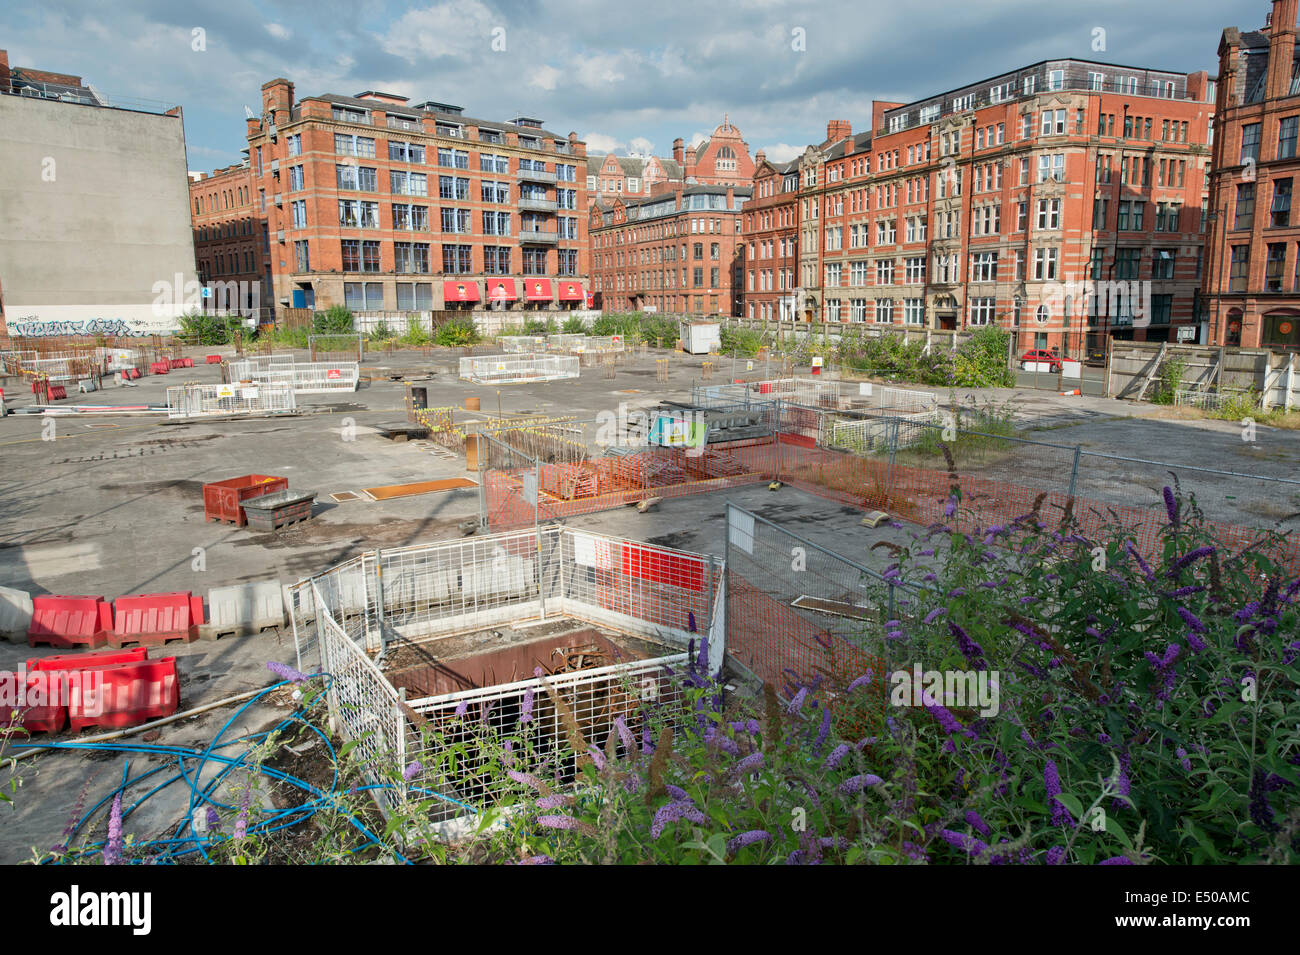 The seemingly abandoned development site of the Origin project located on Princess Street and Whitworth Street in - Stock Image